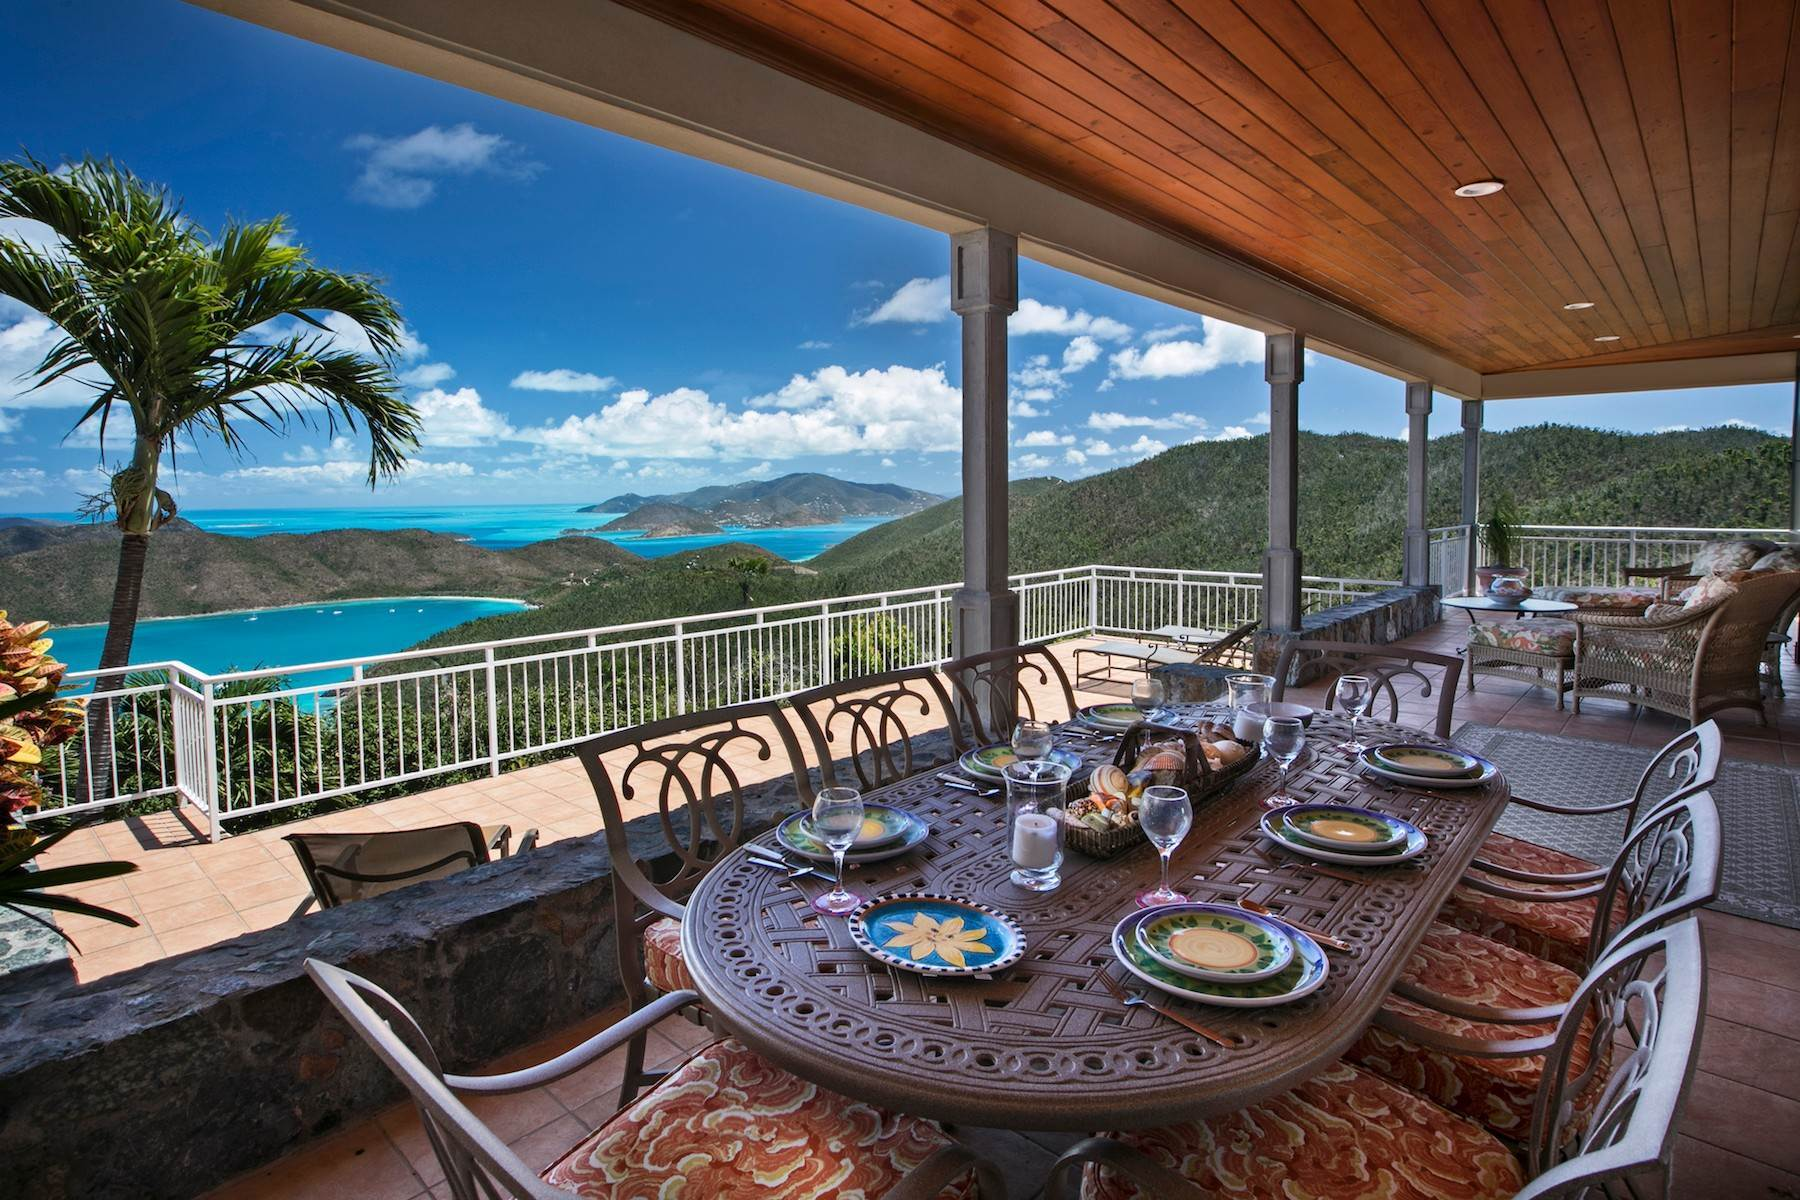 Single Family Homes pour l Vente à Island Sun 3-5 Catherineberg St John, Virgin Islands 00830 Isles Vierges Américaines